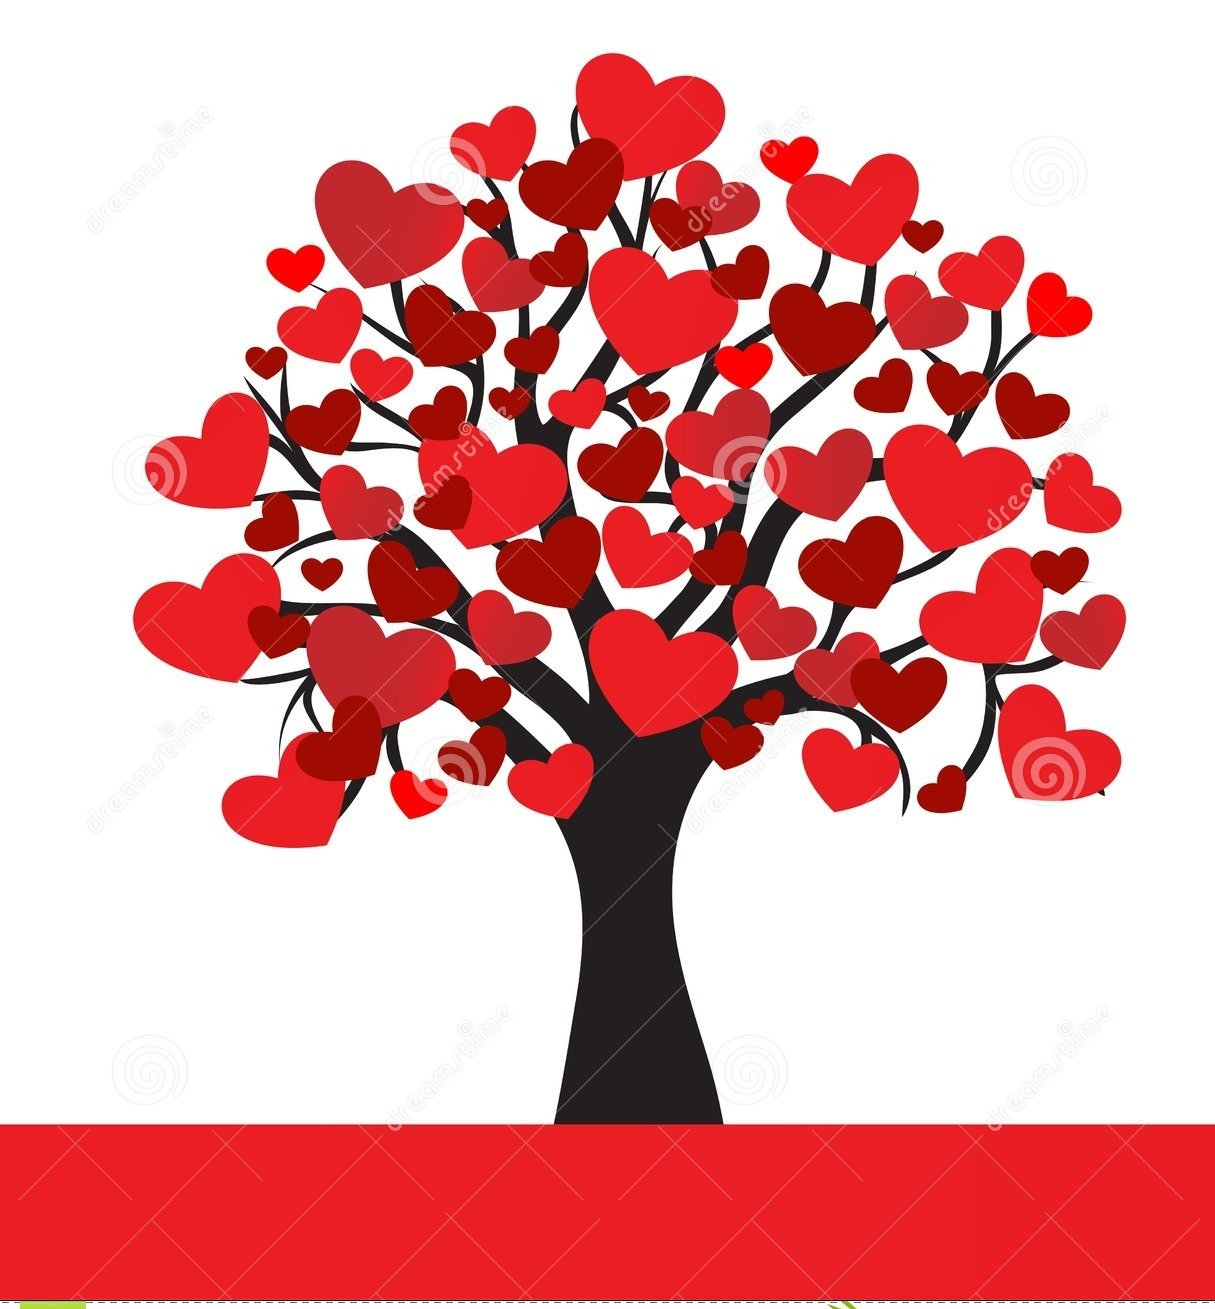 abstract-heart-tree-28538106.jpg